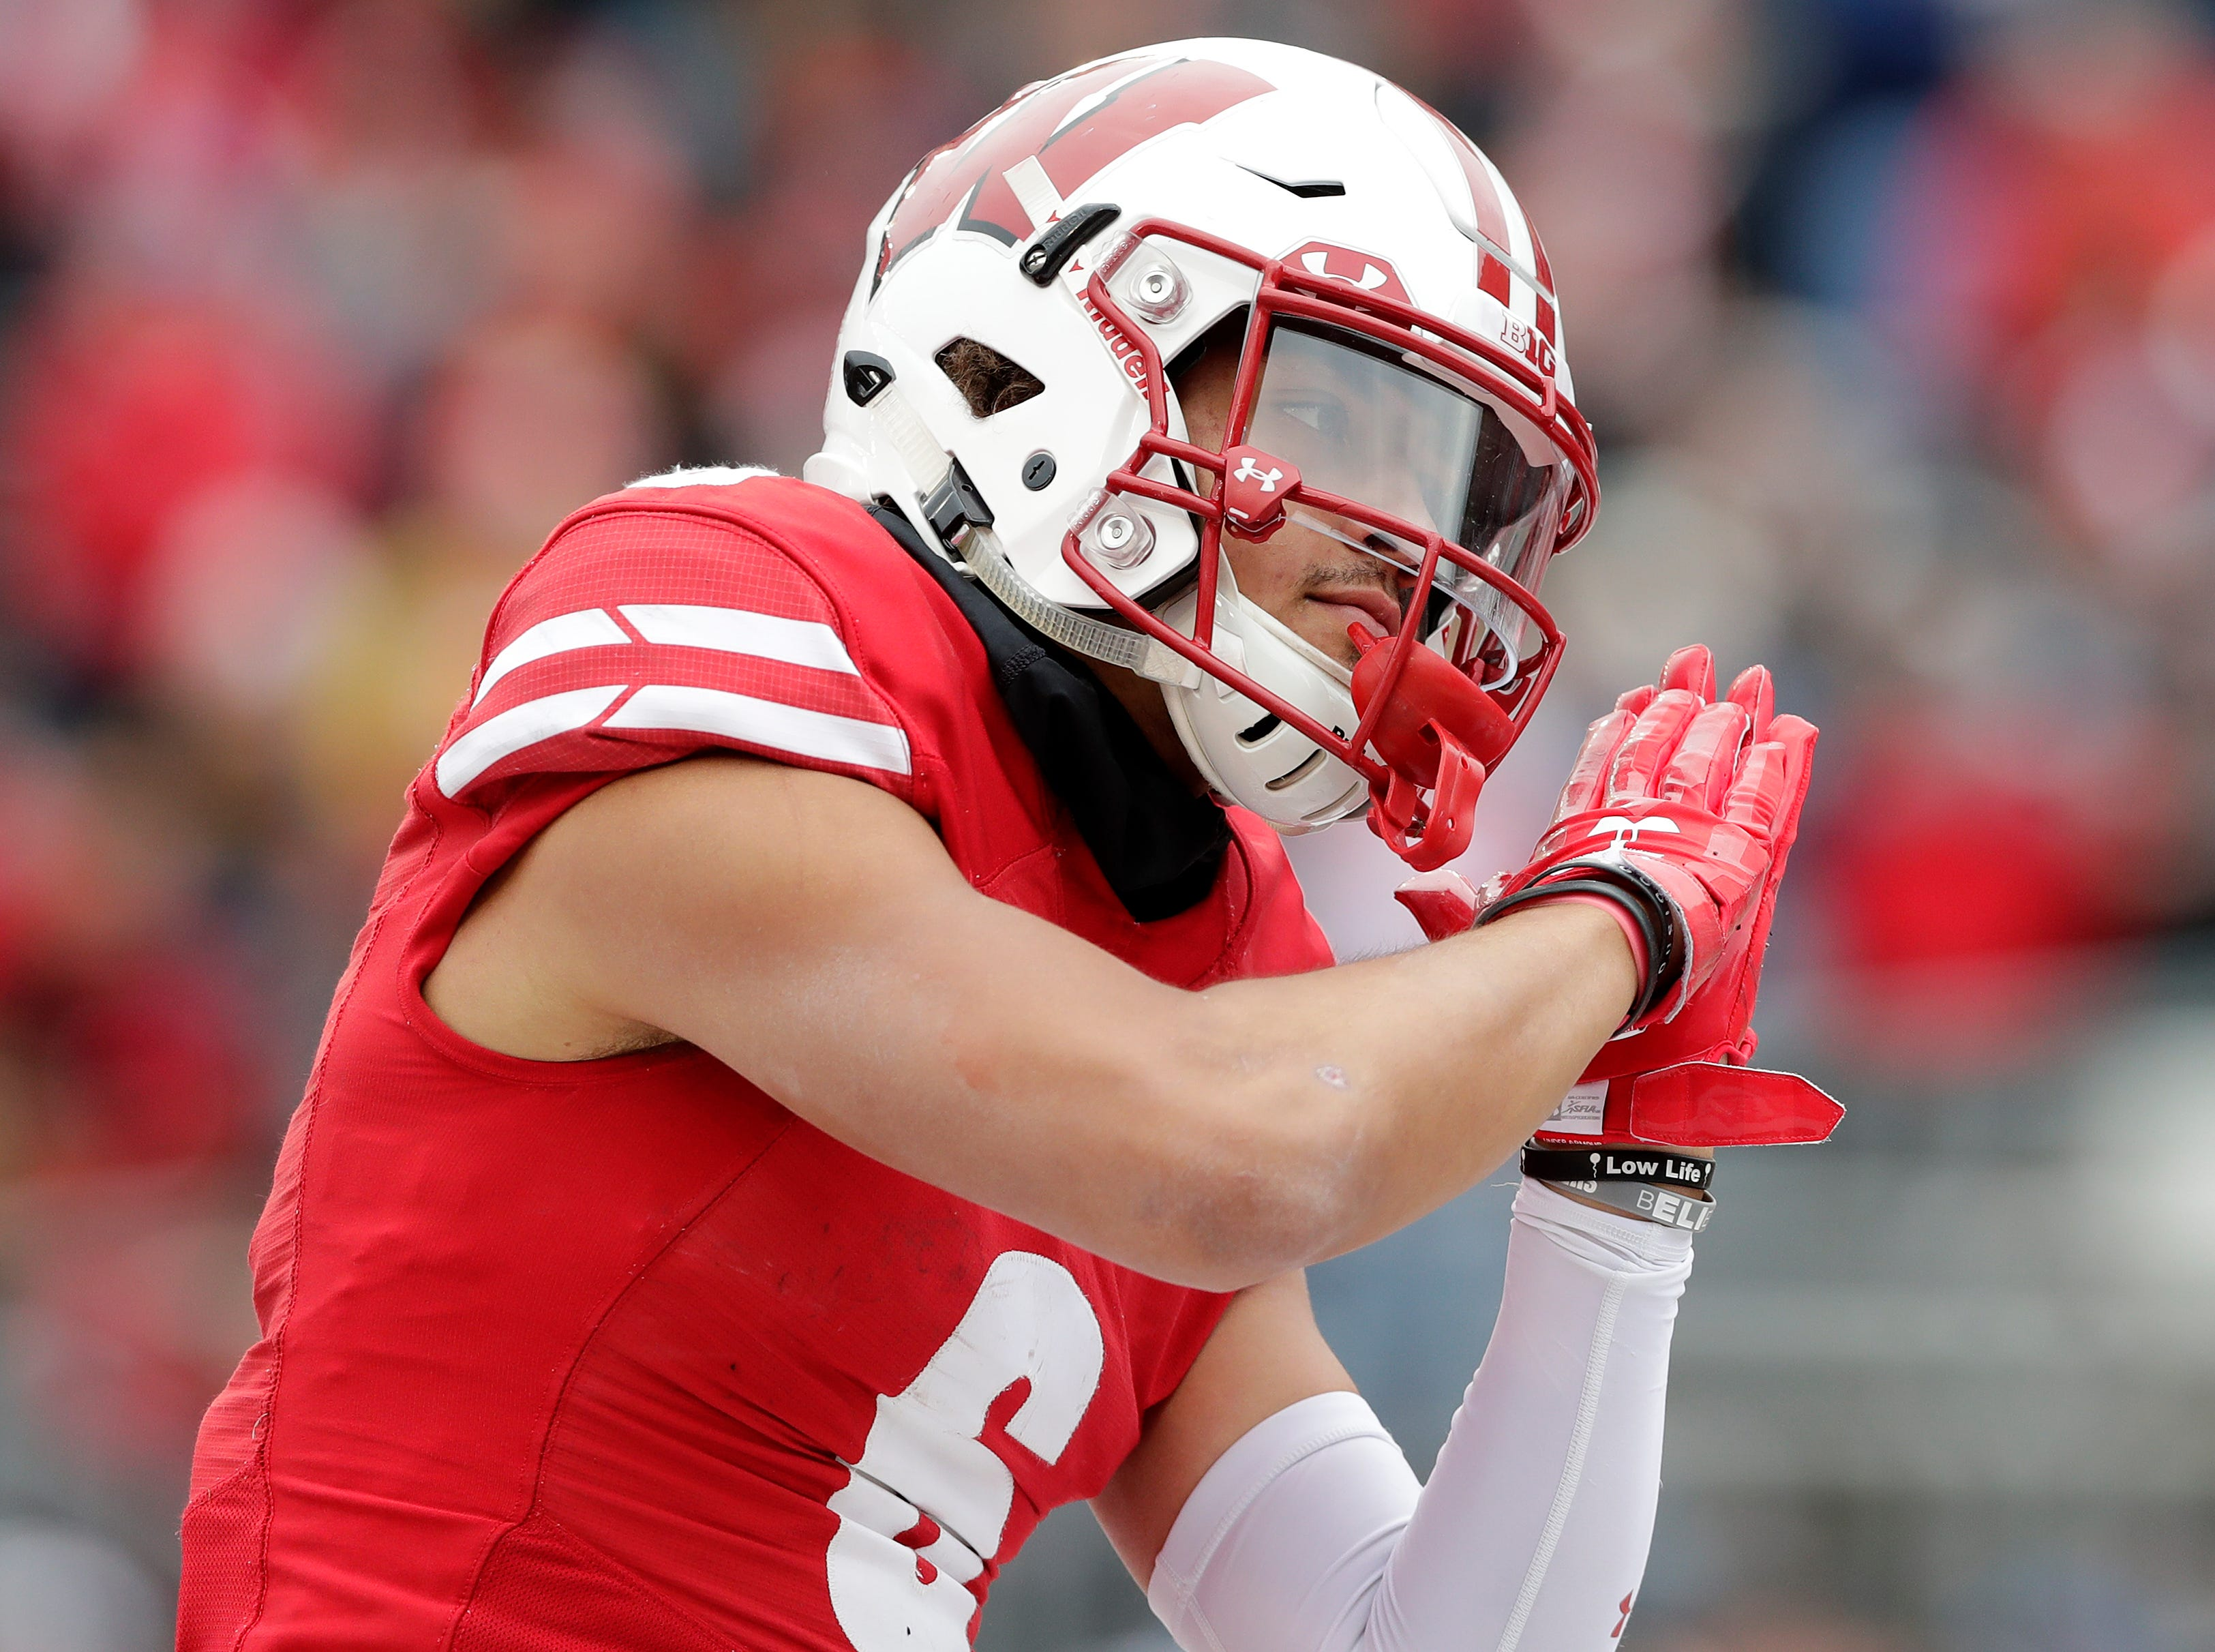 Wisconsin Badgers wide receiver Danny Davis III (6) celebrates after scoring a touchdown against the Rutgers Scarlet Knights in the fourth quarter of a Big Ten football game at Camp Randall Stadium on Saturday, November 3, 2018 in Madison, Wis.Adam Wesley/USA TODAY NETWORK-Wisconsin